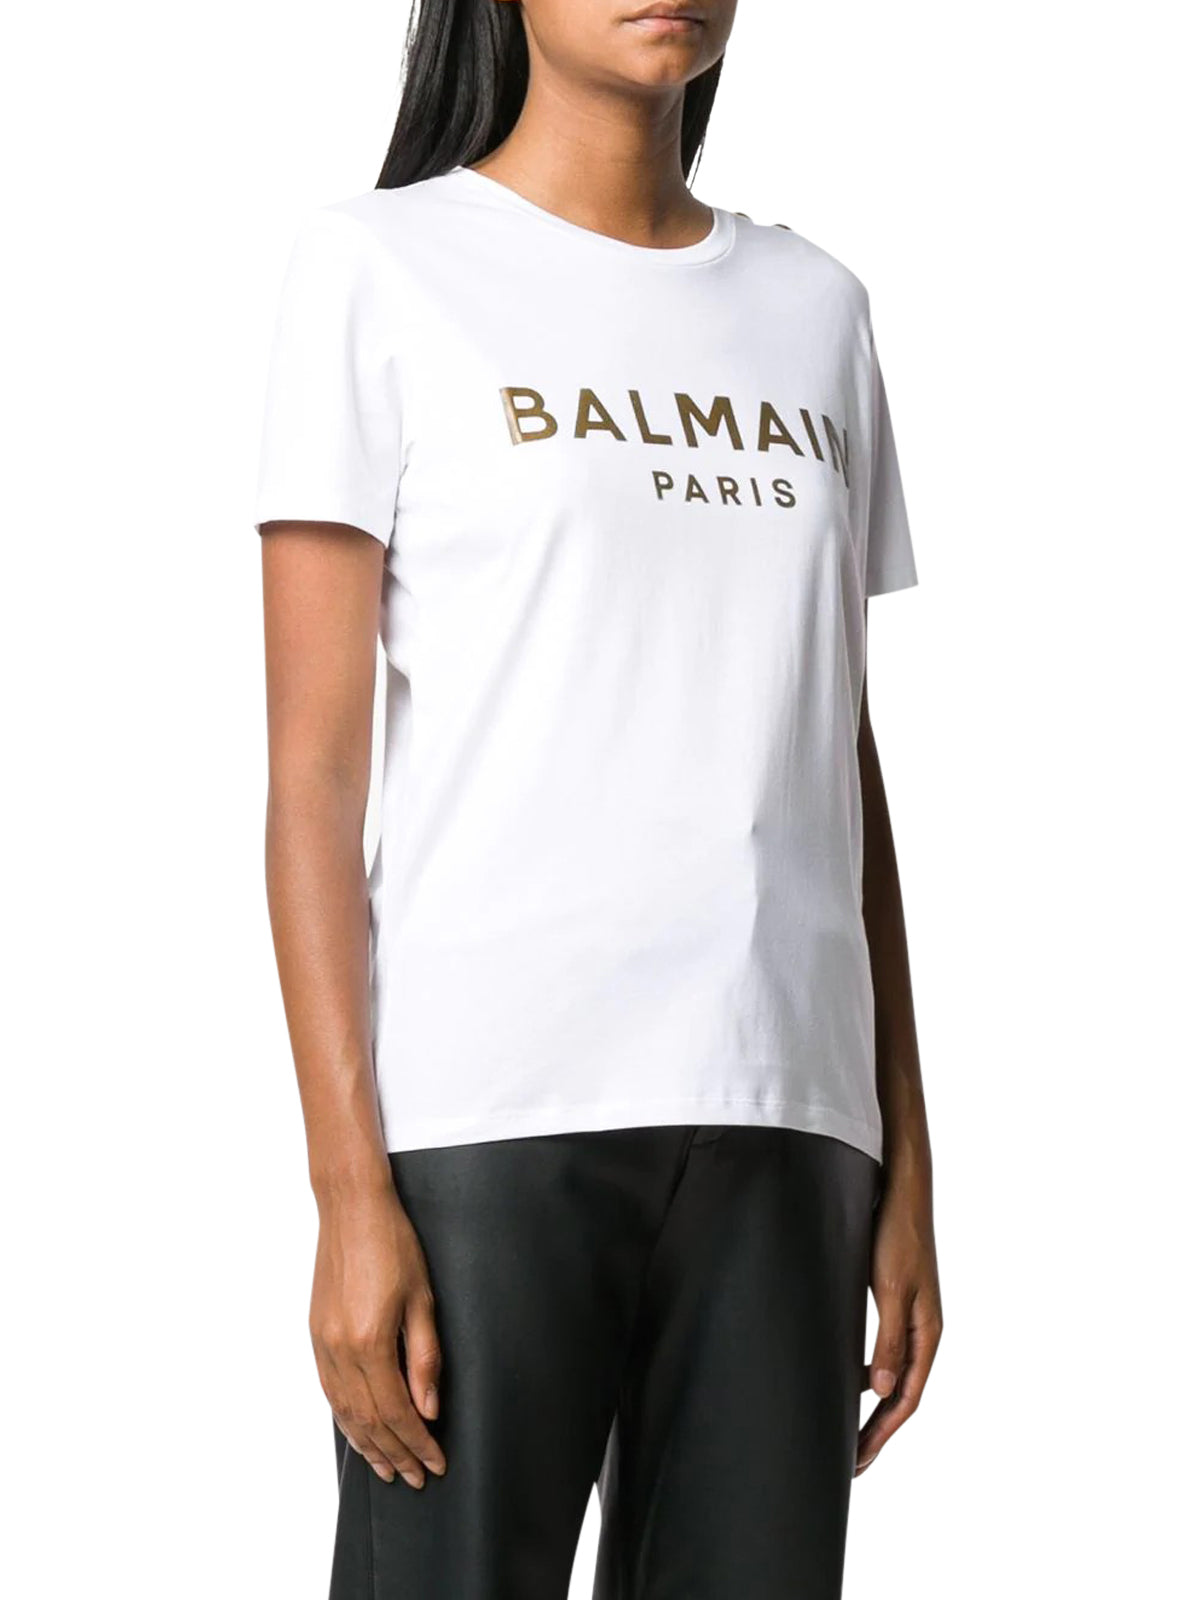 button-embellished metallic logo T-shirt